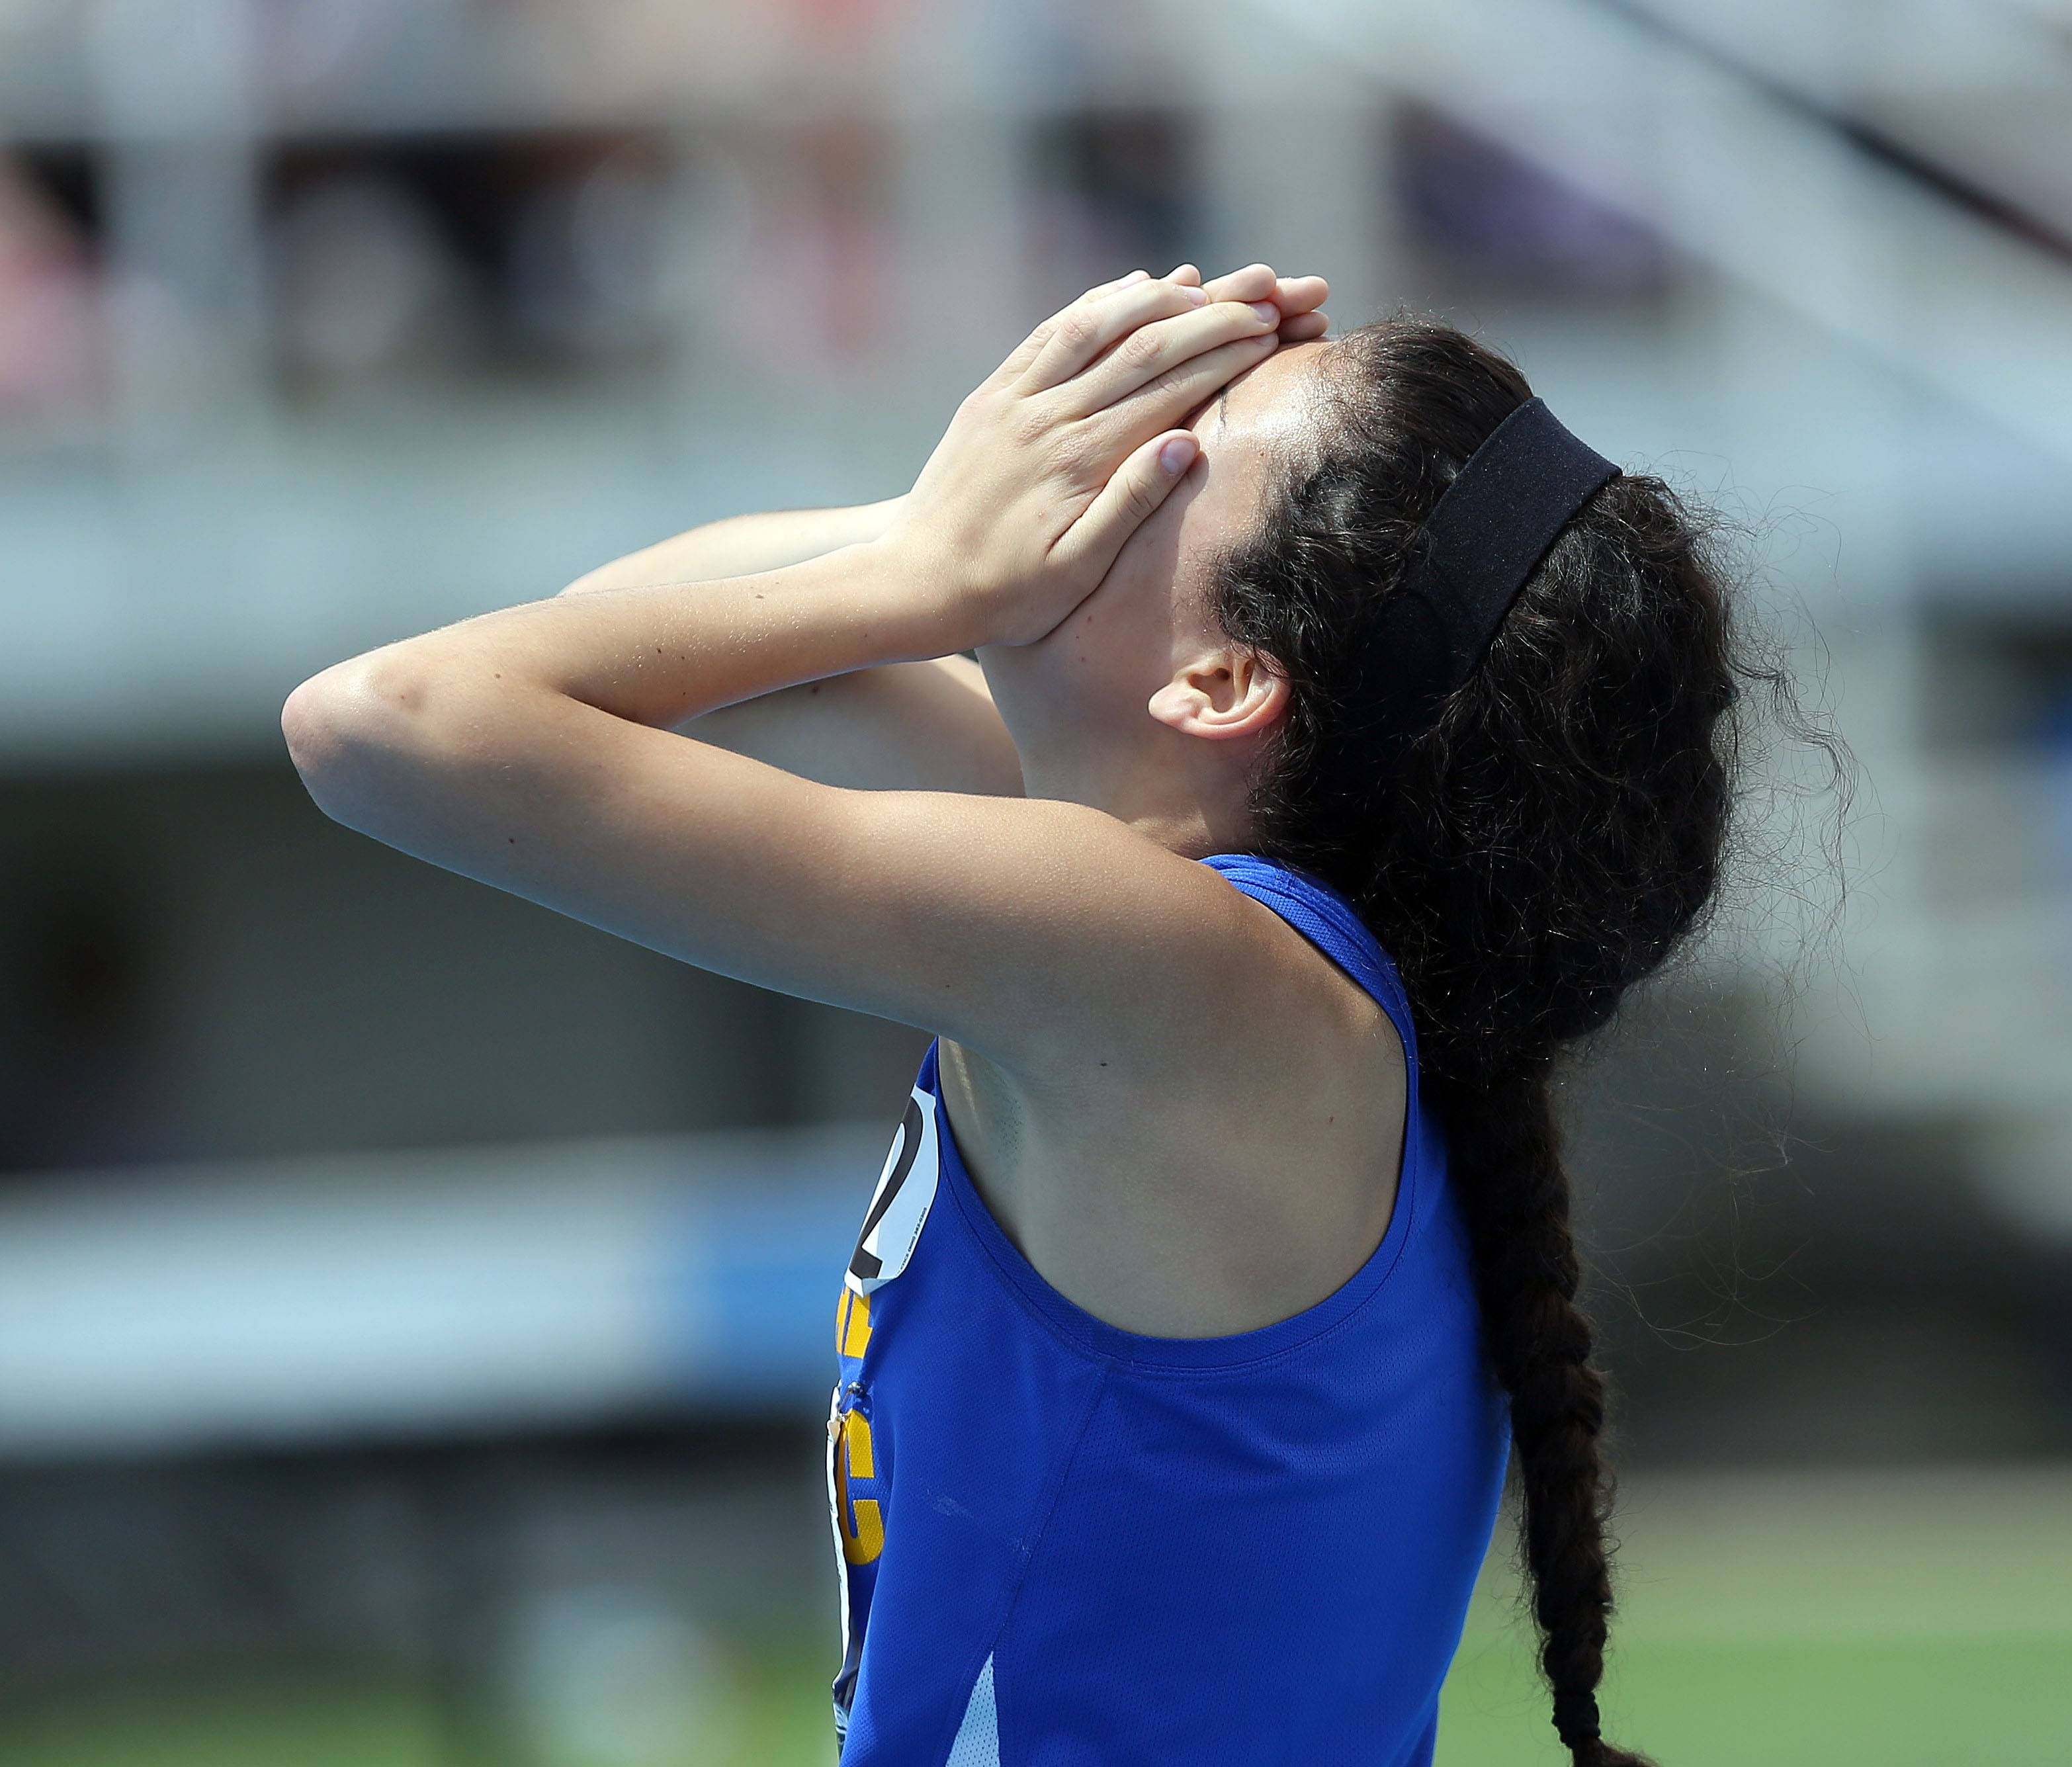 Aurora Central Catholic's Karina Liz reacts after winning the class 2A 800-meter run during the girls track and field state finals at Eastern Illinois University in Charleston Saturday.